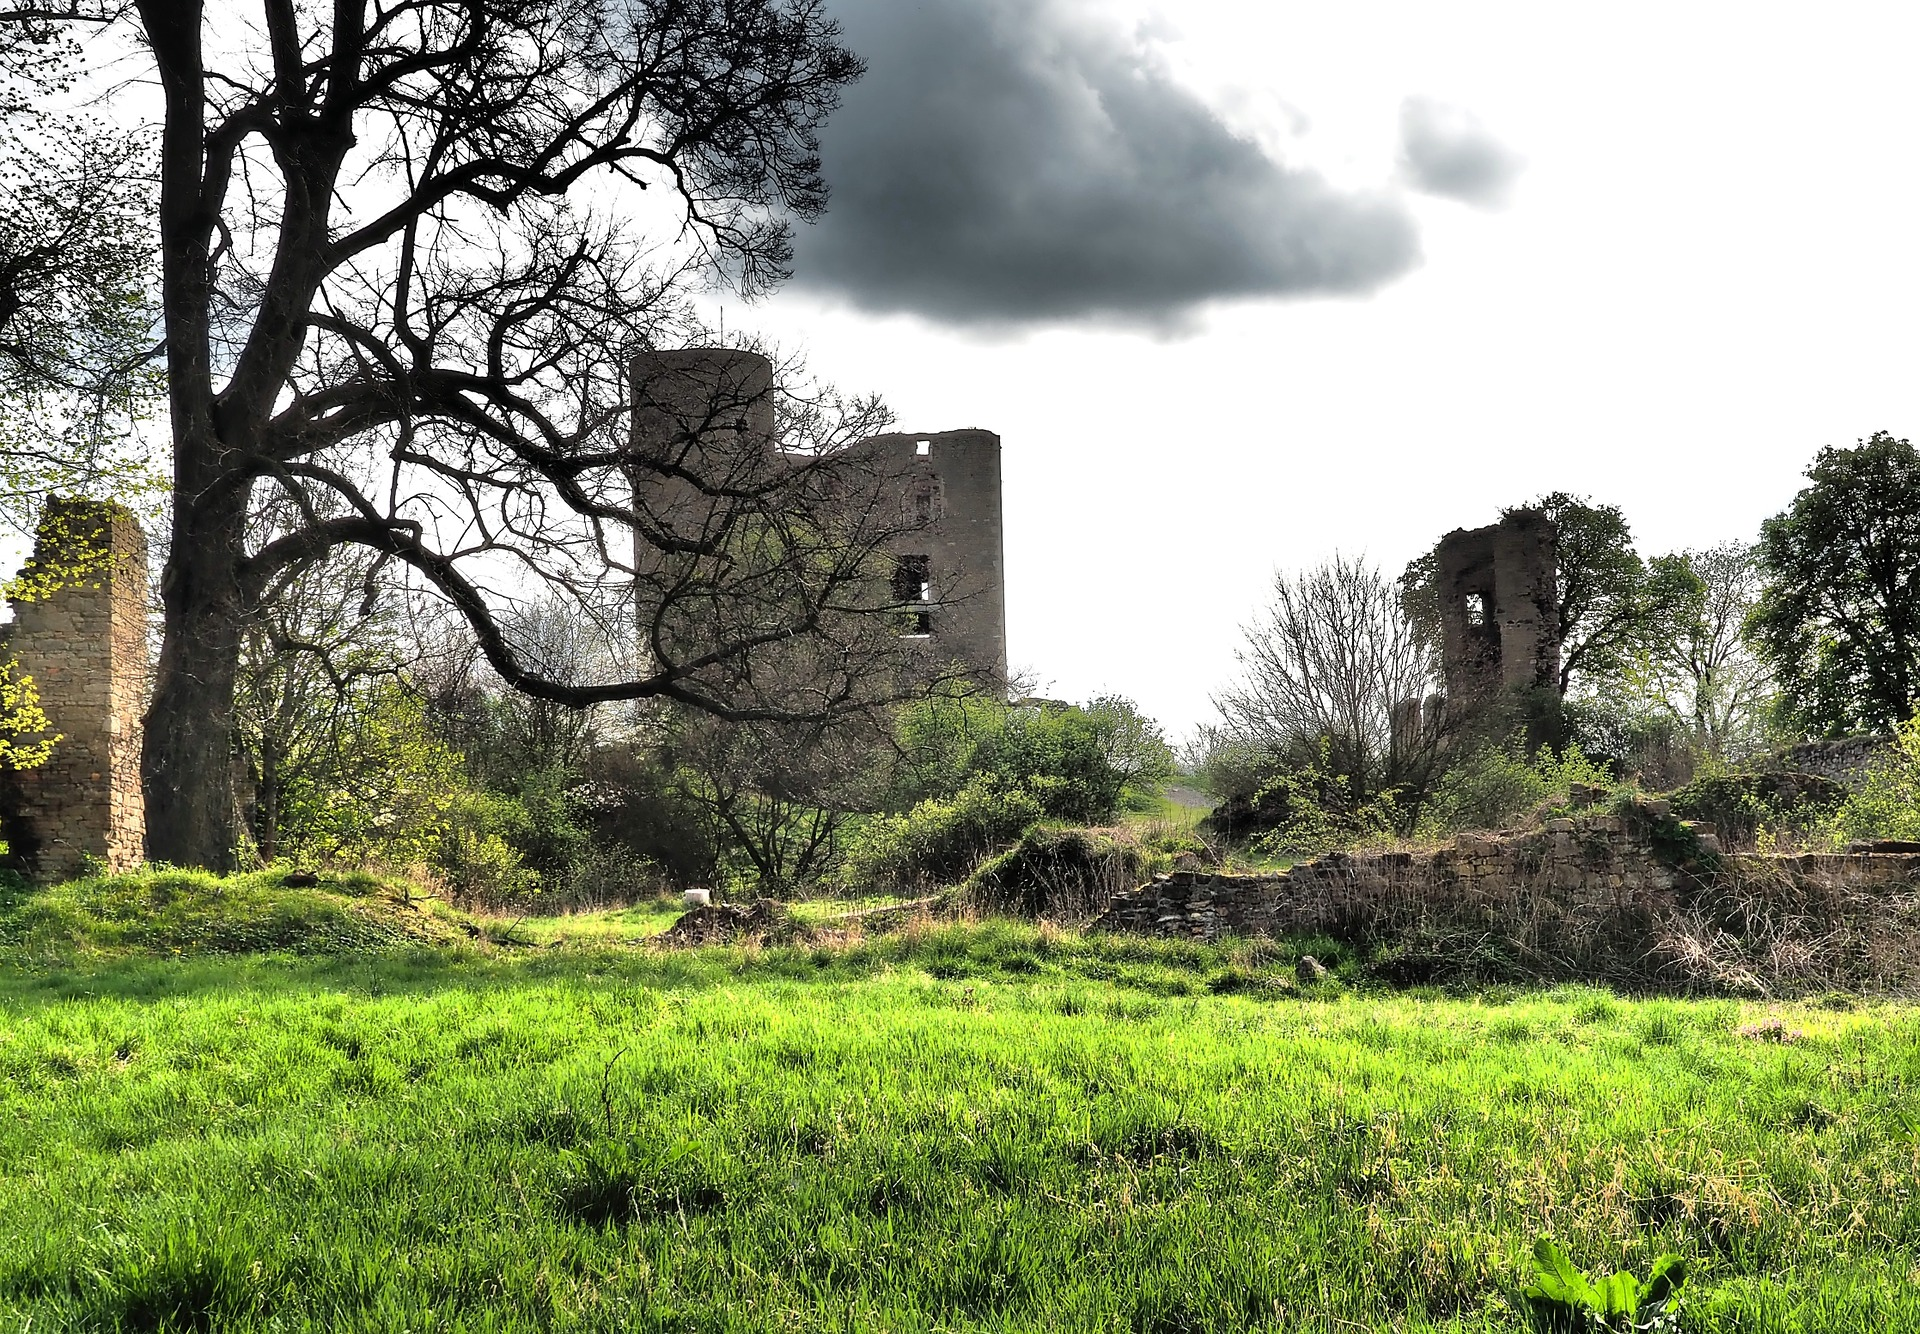 Old Castle Ruins, Abandoned, Architecture, Building, Castle, HQ Photo